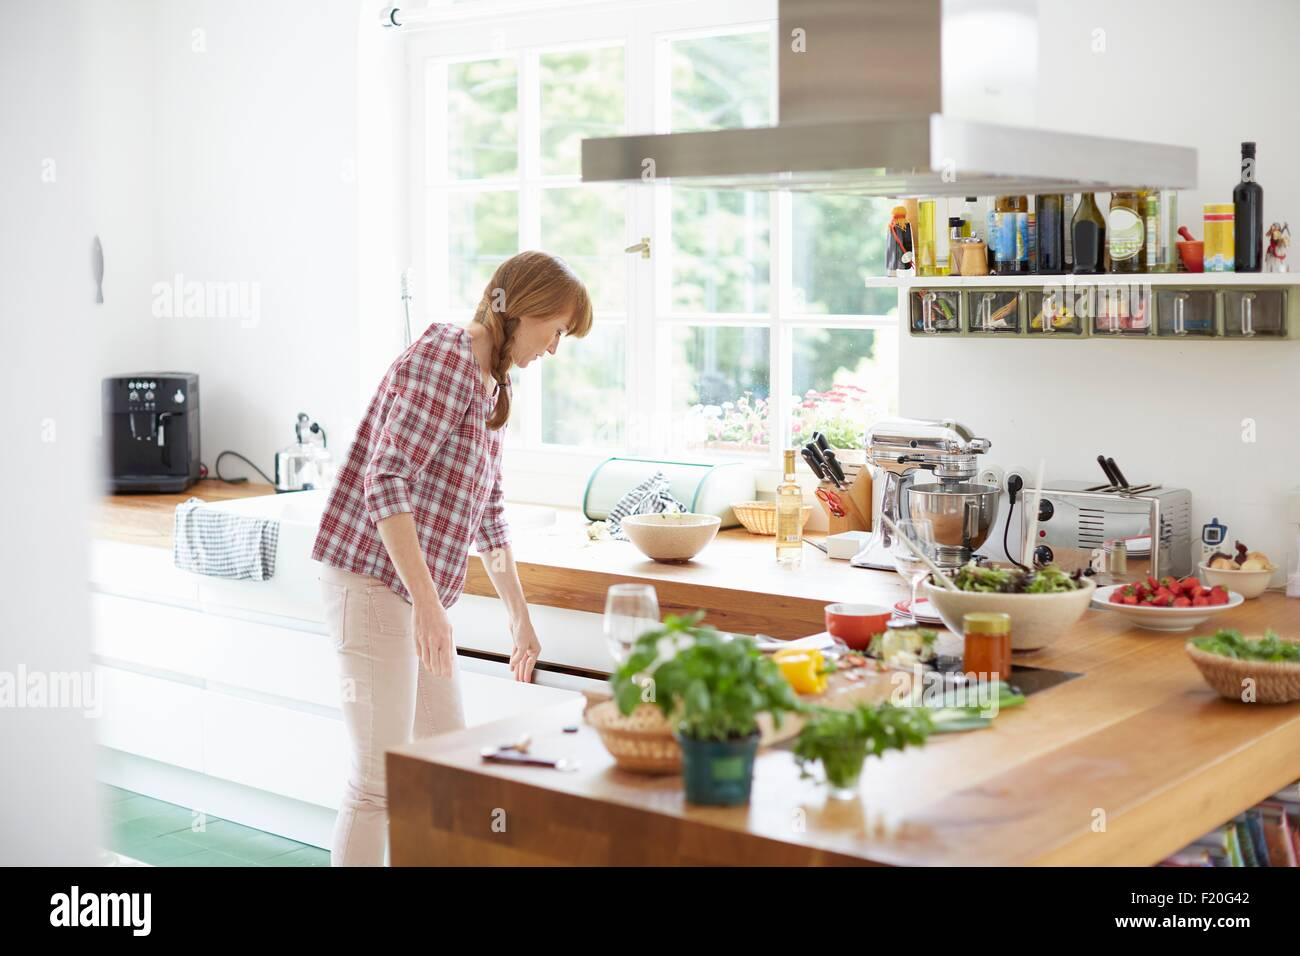 Woman preparing meal in kitchen Photo Stock